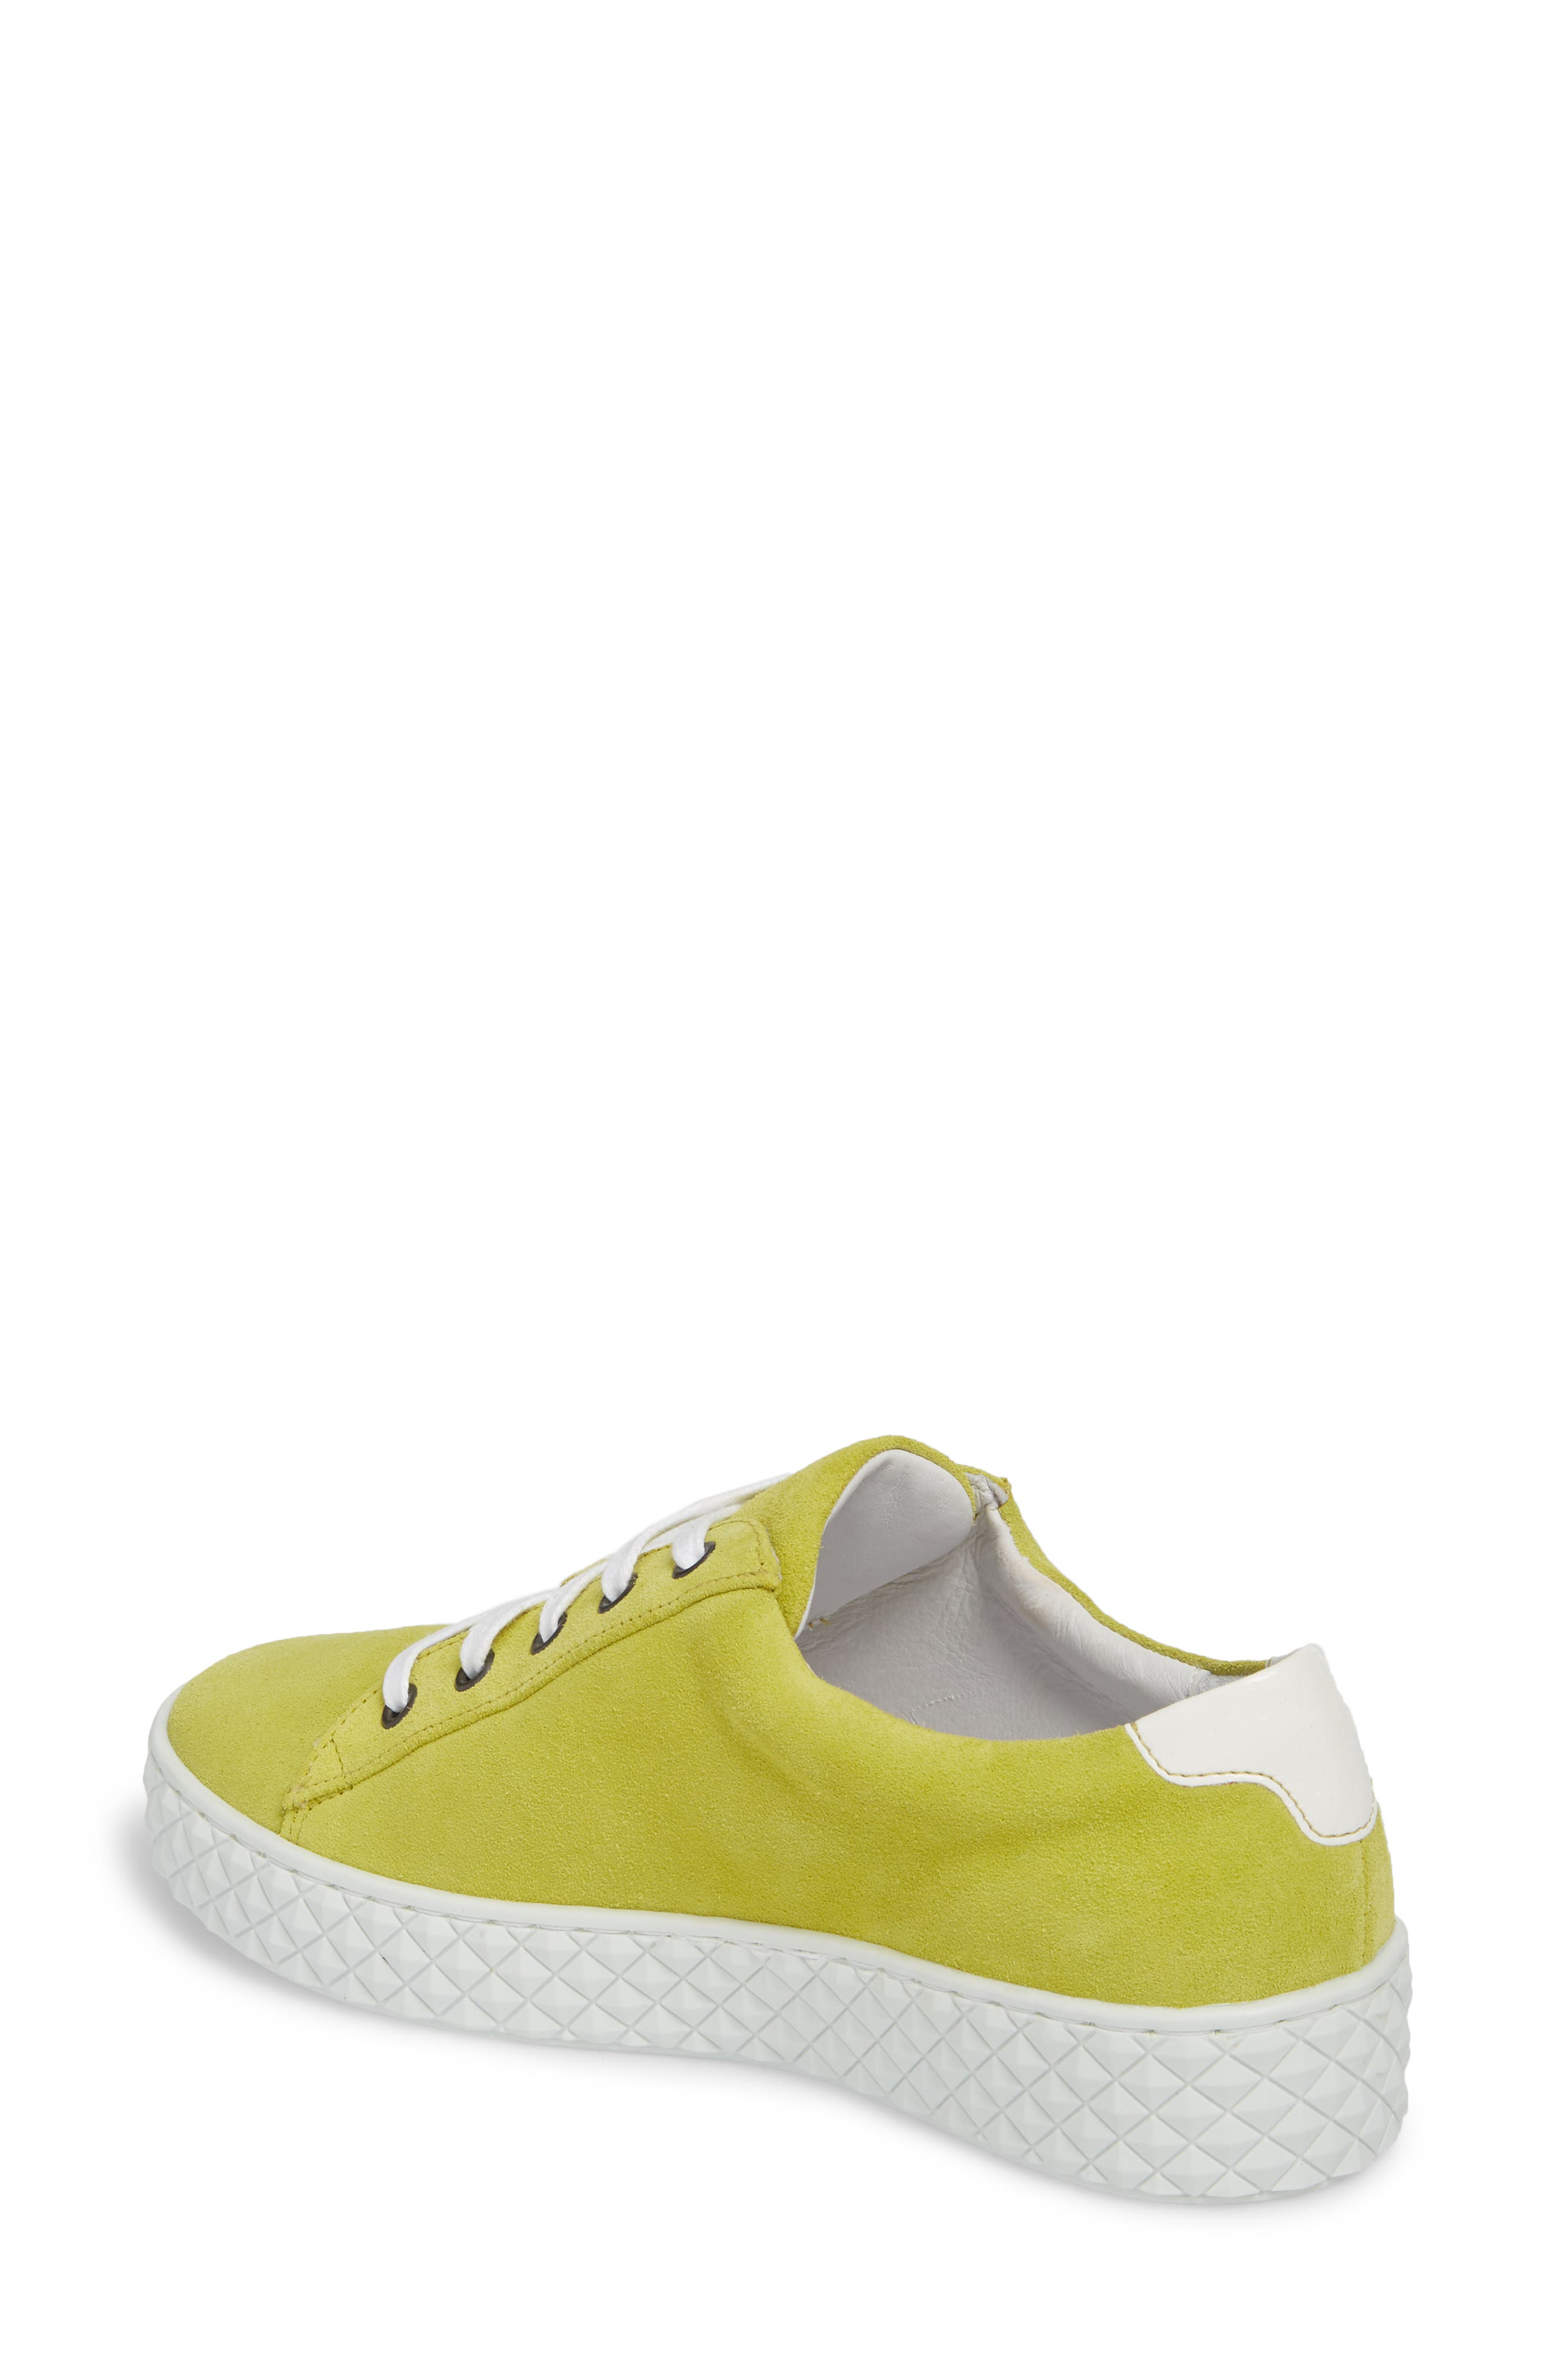 Albufeira Sneaker,                             Alternate thumbnail 2, color,                             Lime/ Optic White Suede